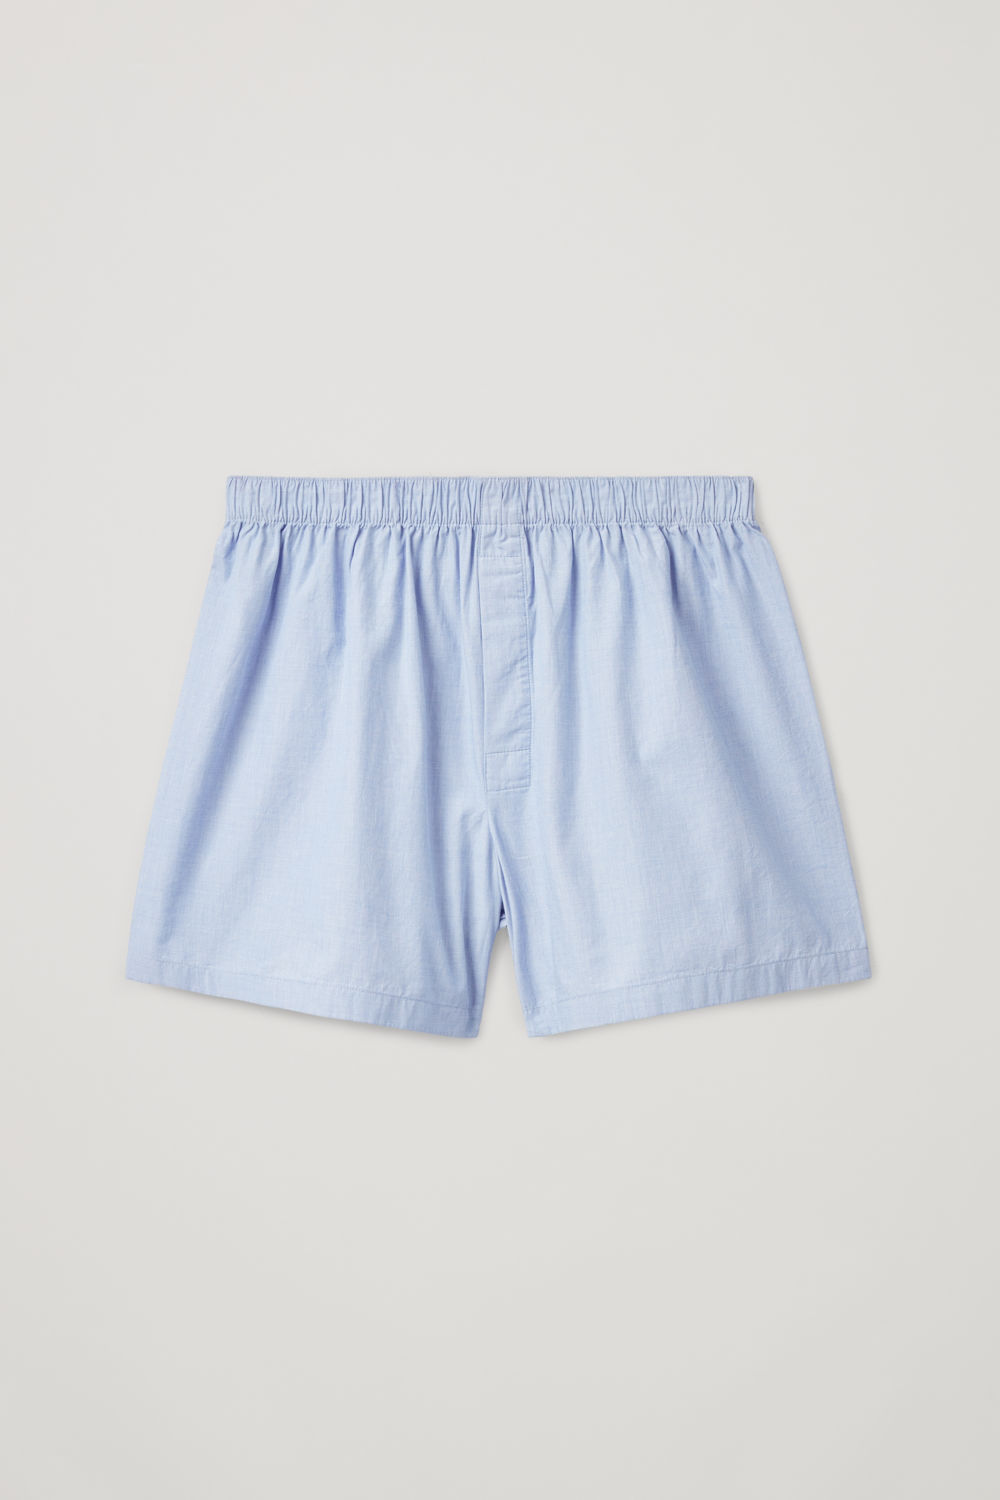 COTTON CHAMBRAY BOXERS